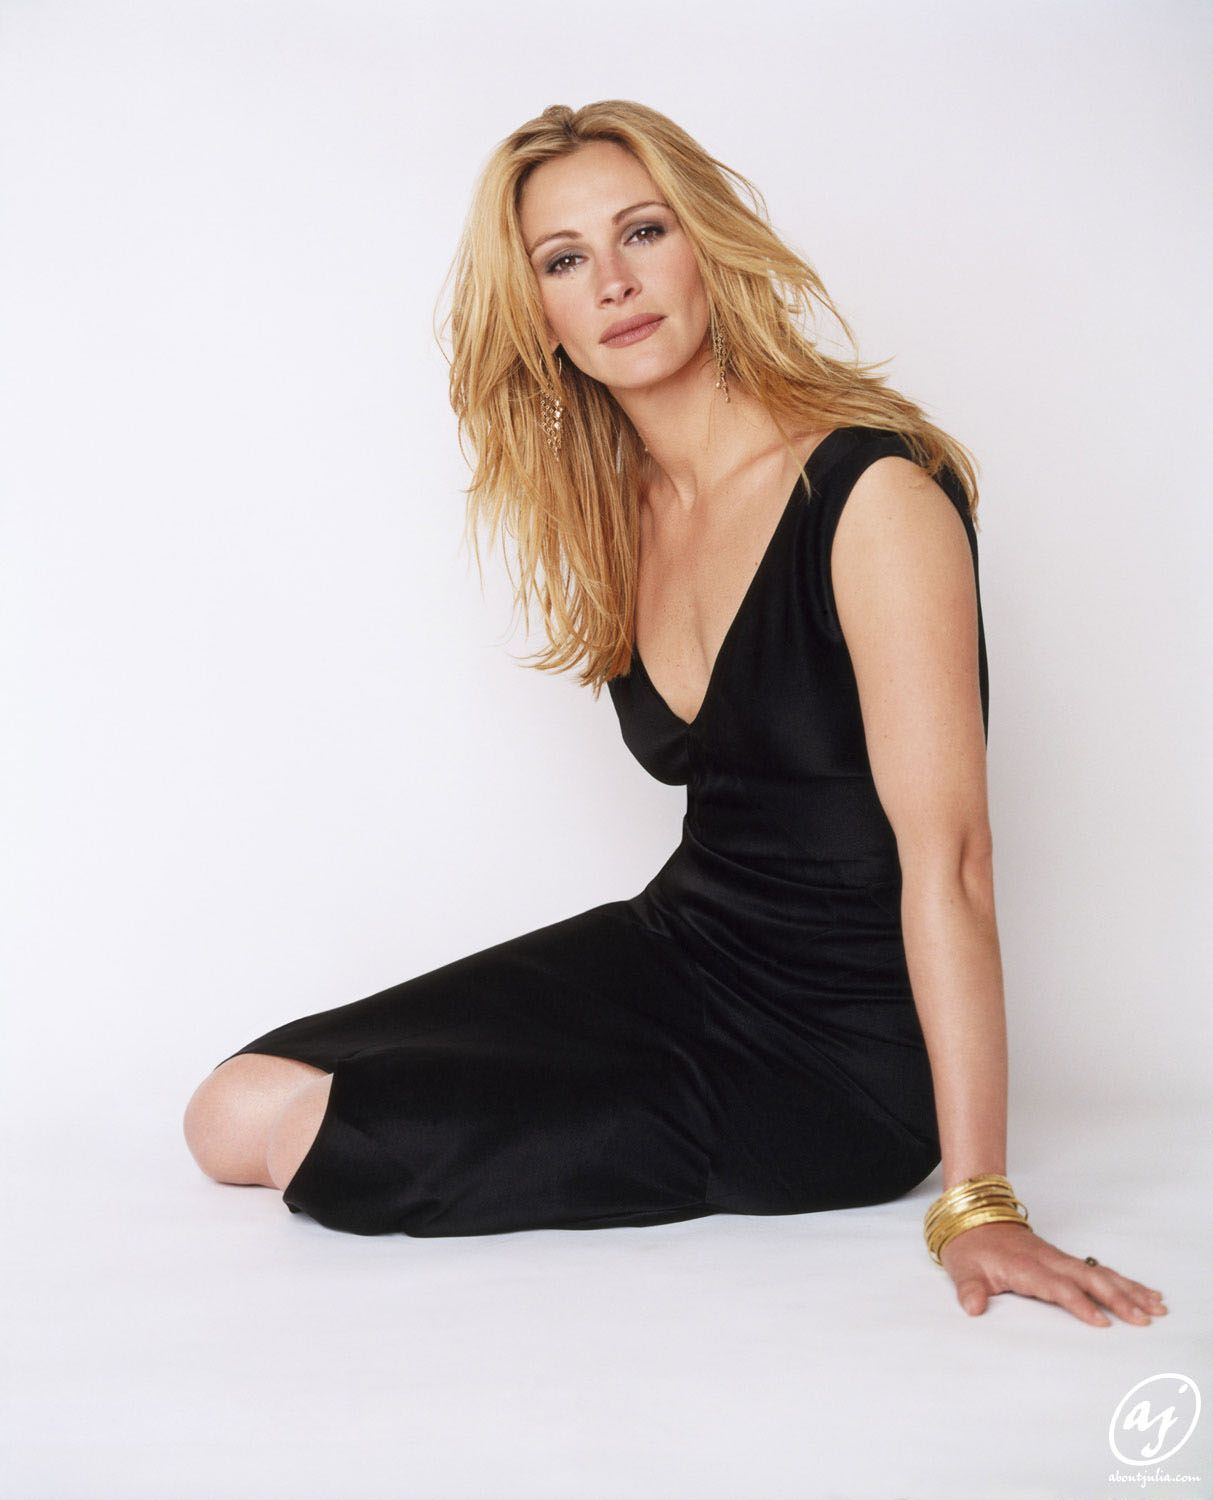 65 Hot Pictures Of Julia Roberts Will Prove Why She Is